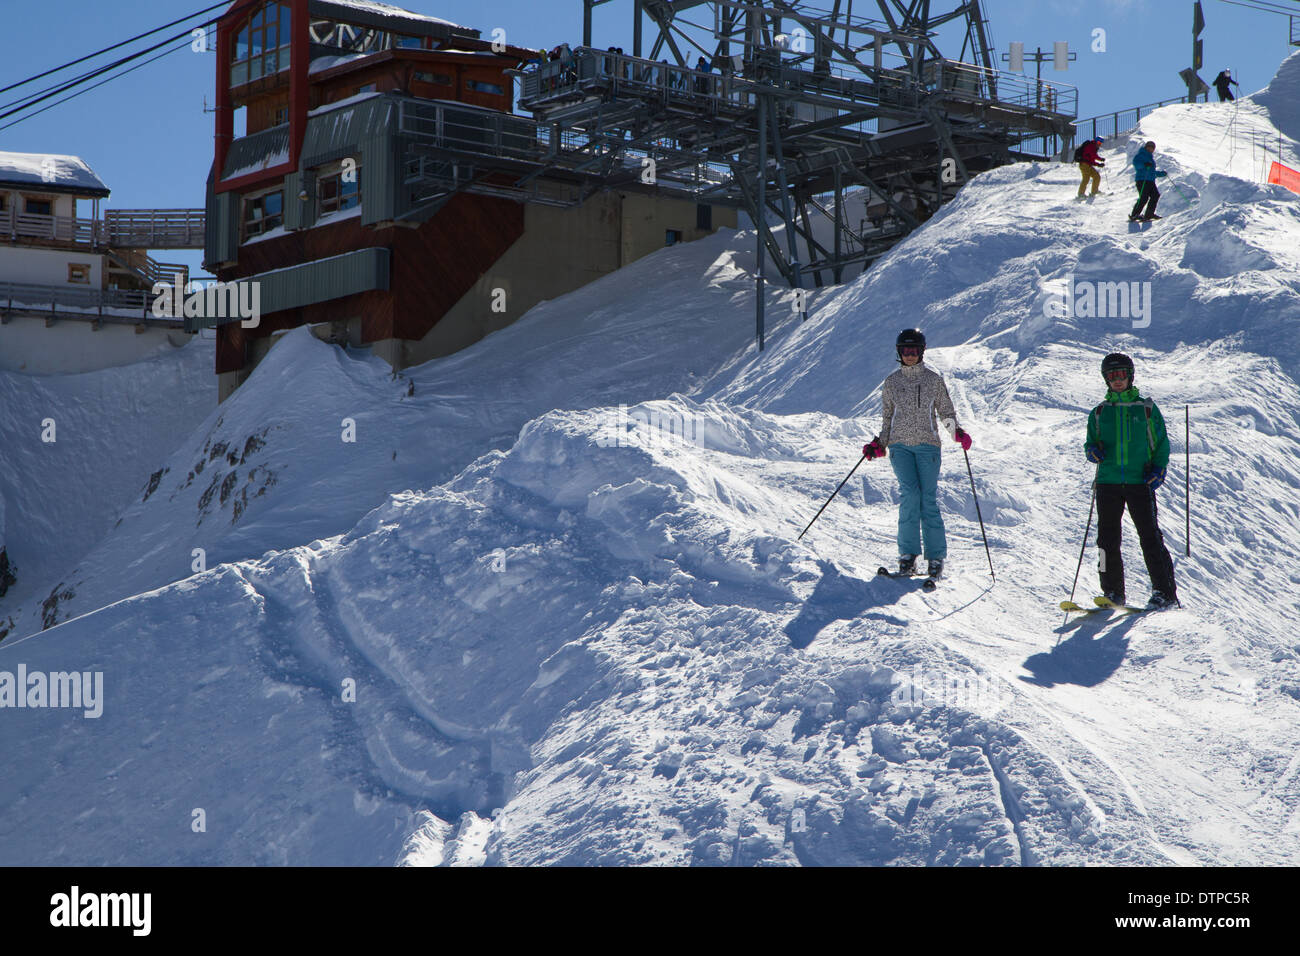 Two Skiers at the Top of Saulire Peak, Entrance piste to the Couloirs - Stock Image